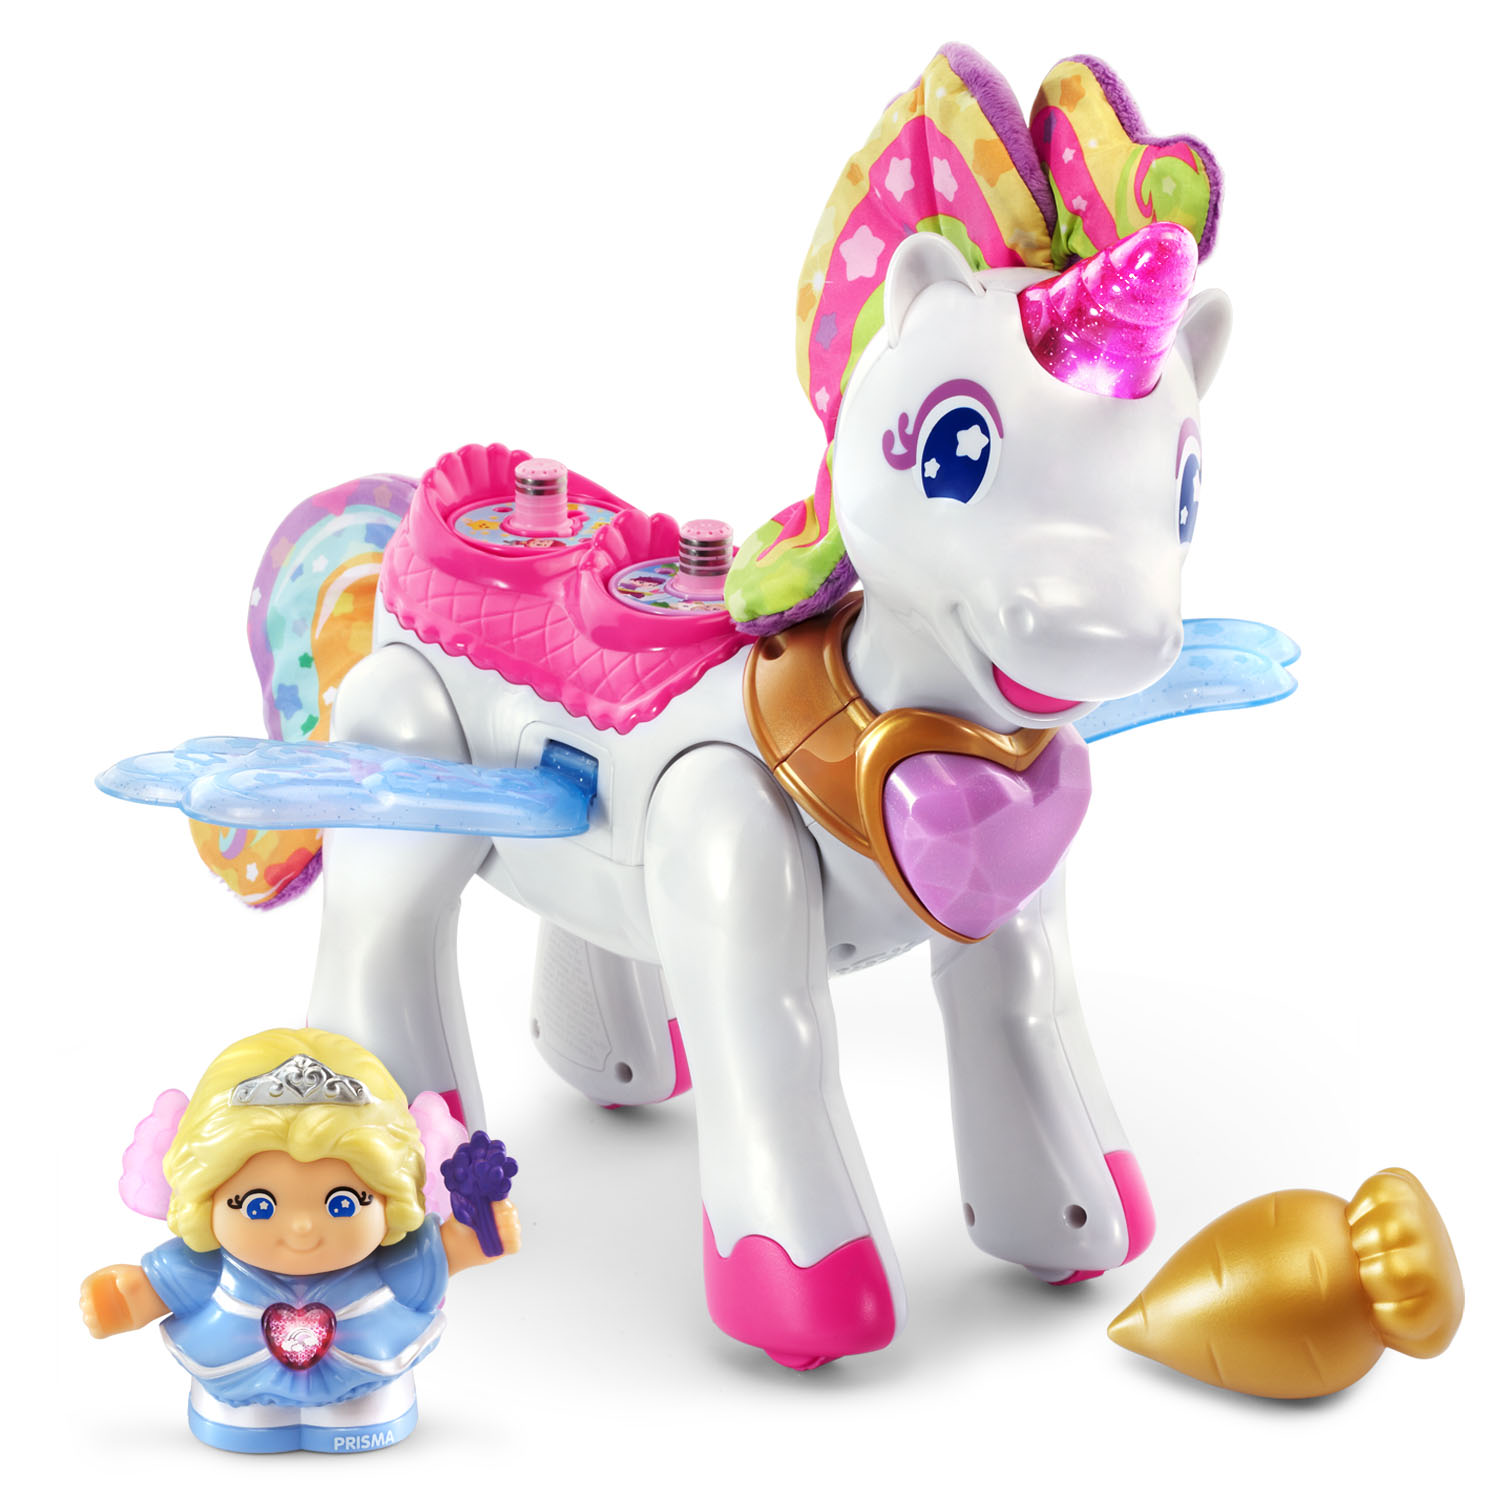 VTech® Go! Go! Smart Friends® Twinkle the Magical Unicorn™